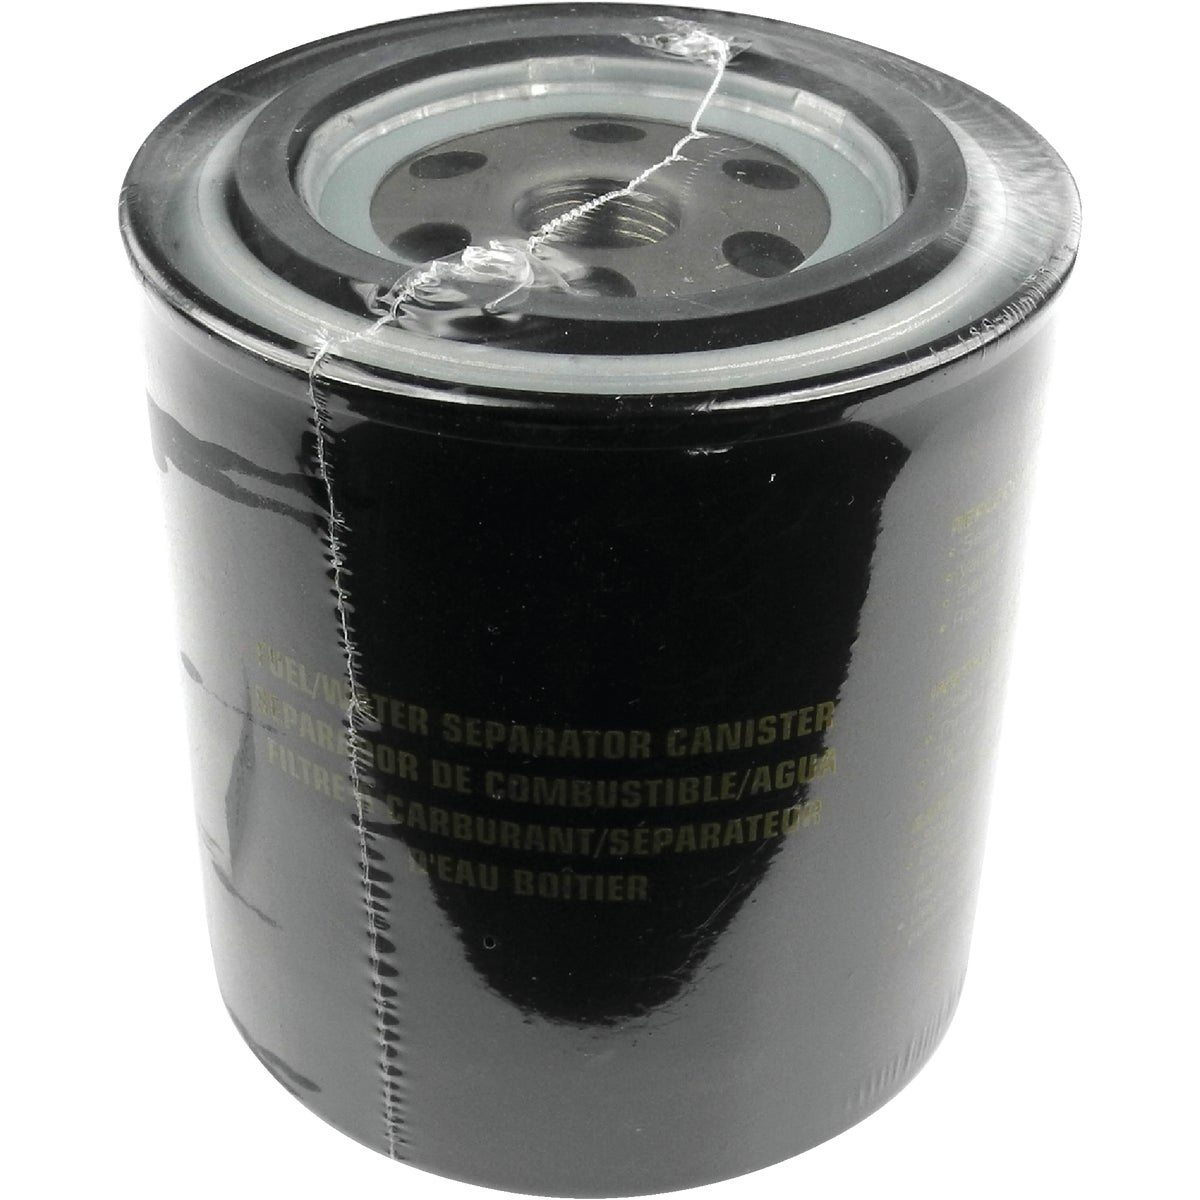 SEPARATOR CANISTER - 20911 by Seachoice Prod